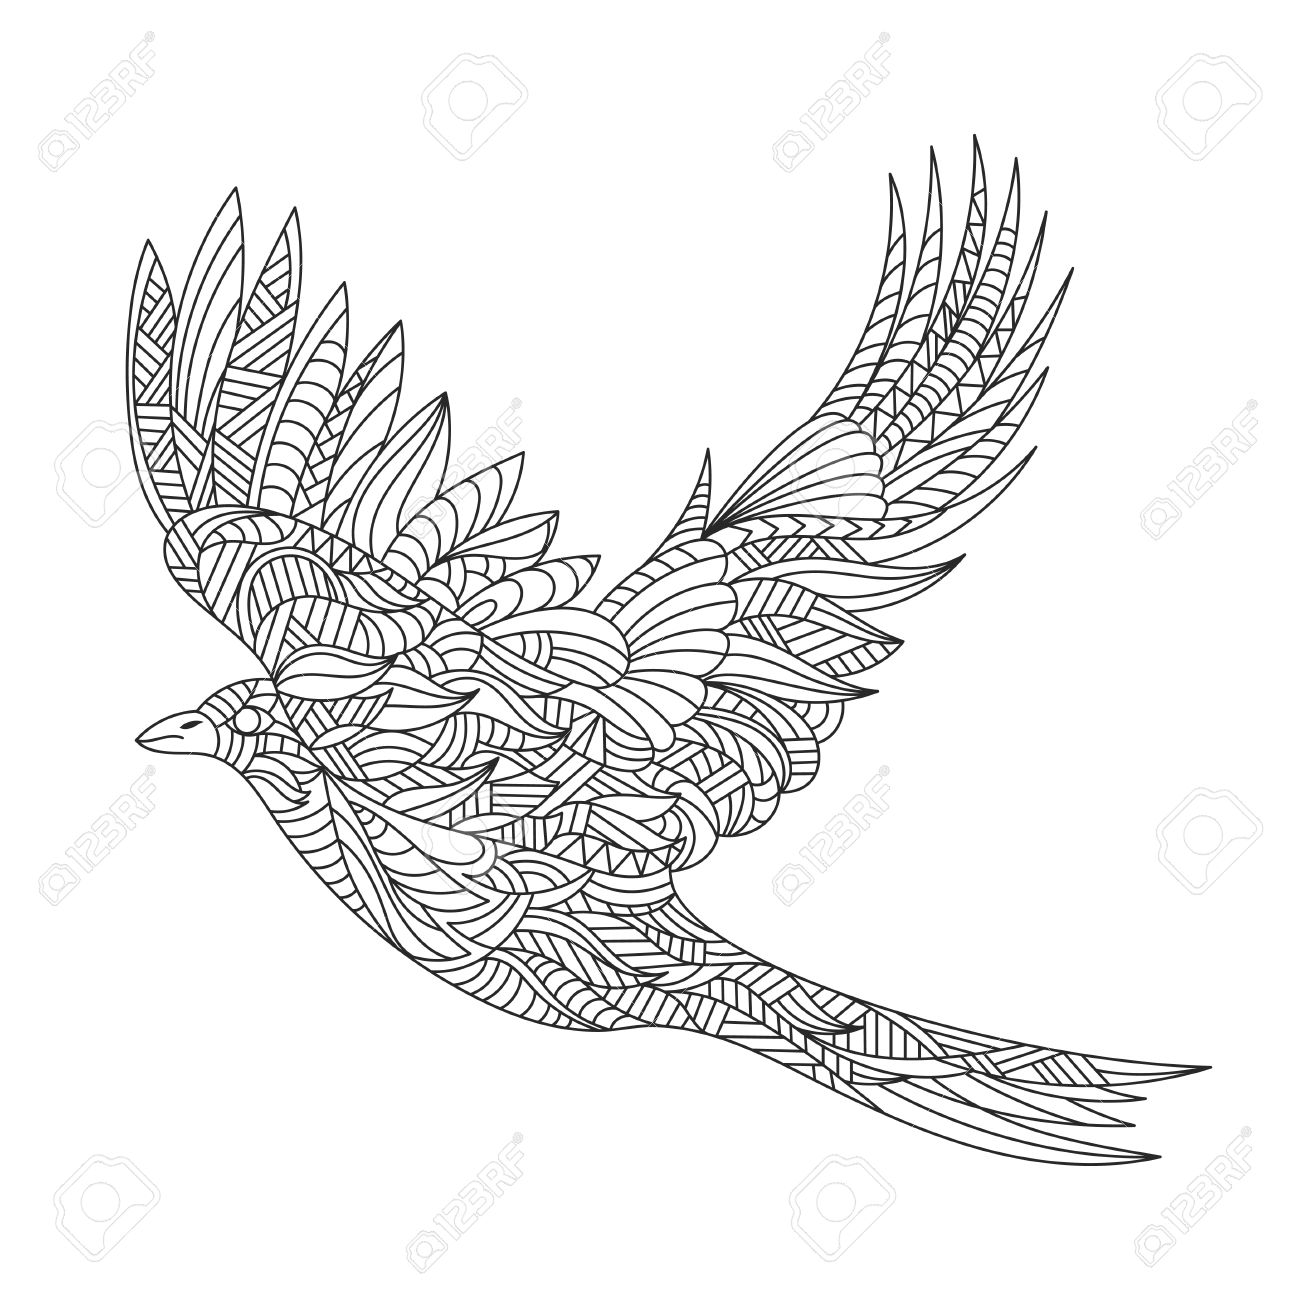 Vector Monochrome Hand Drawn Zentagle Illustration Of Magpie. Coloring Page  With High Details Isolated On